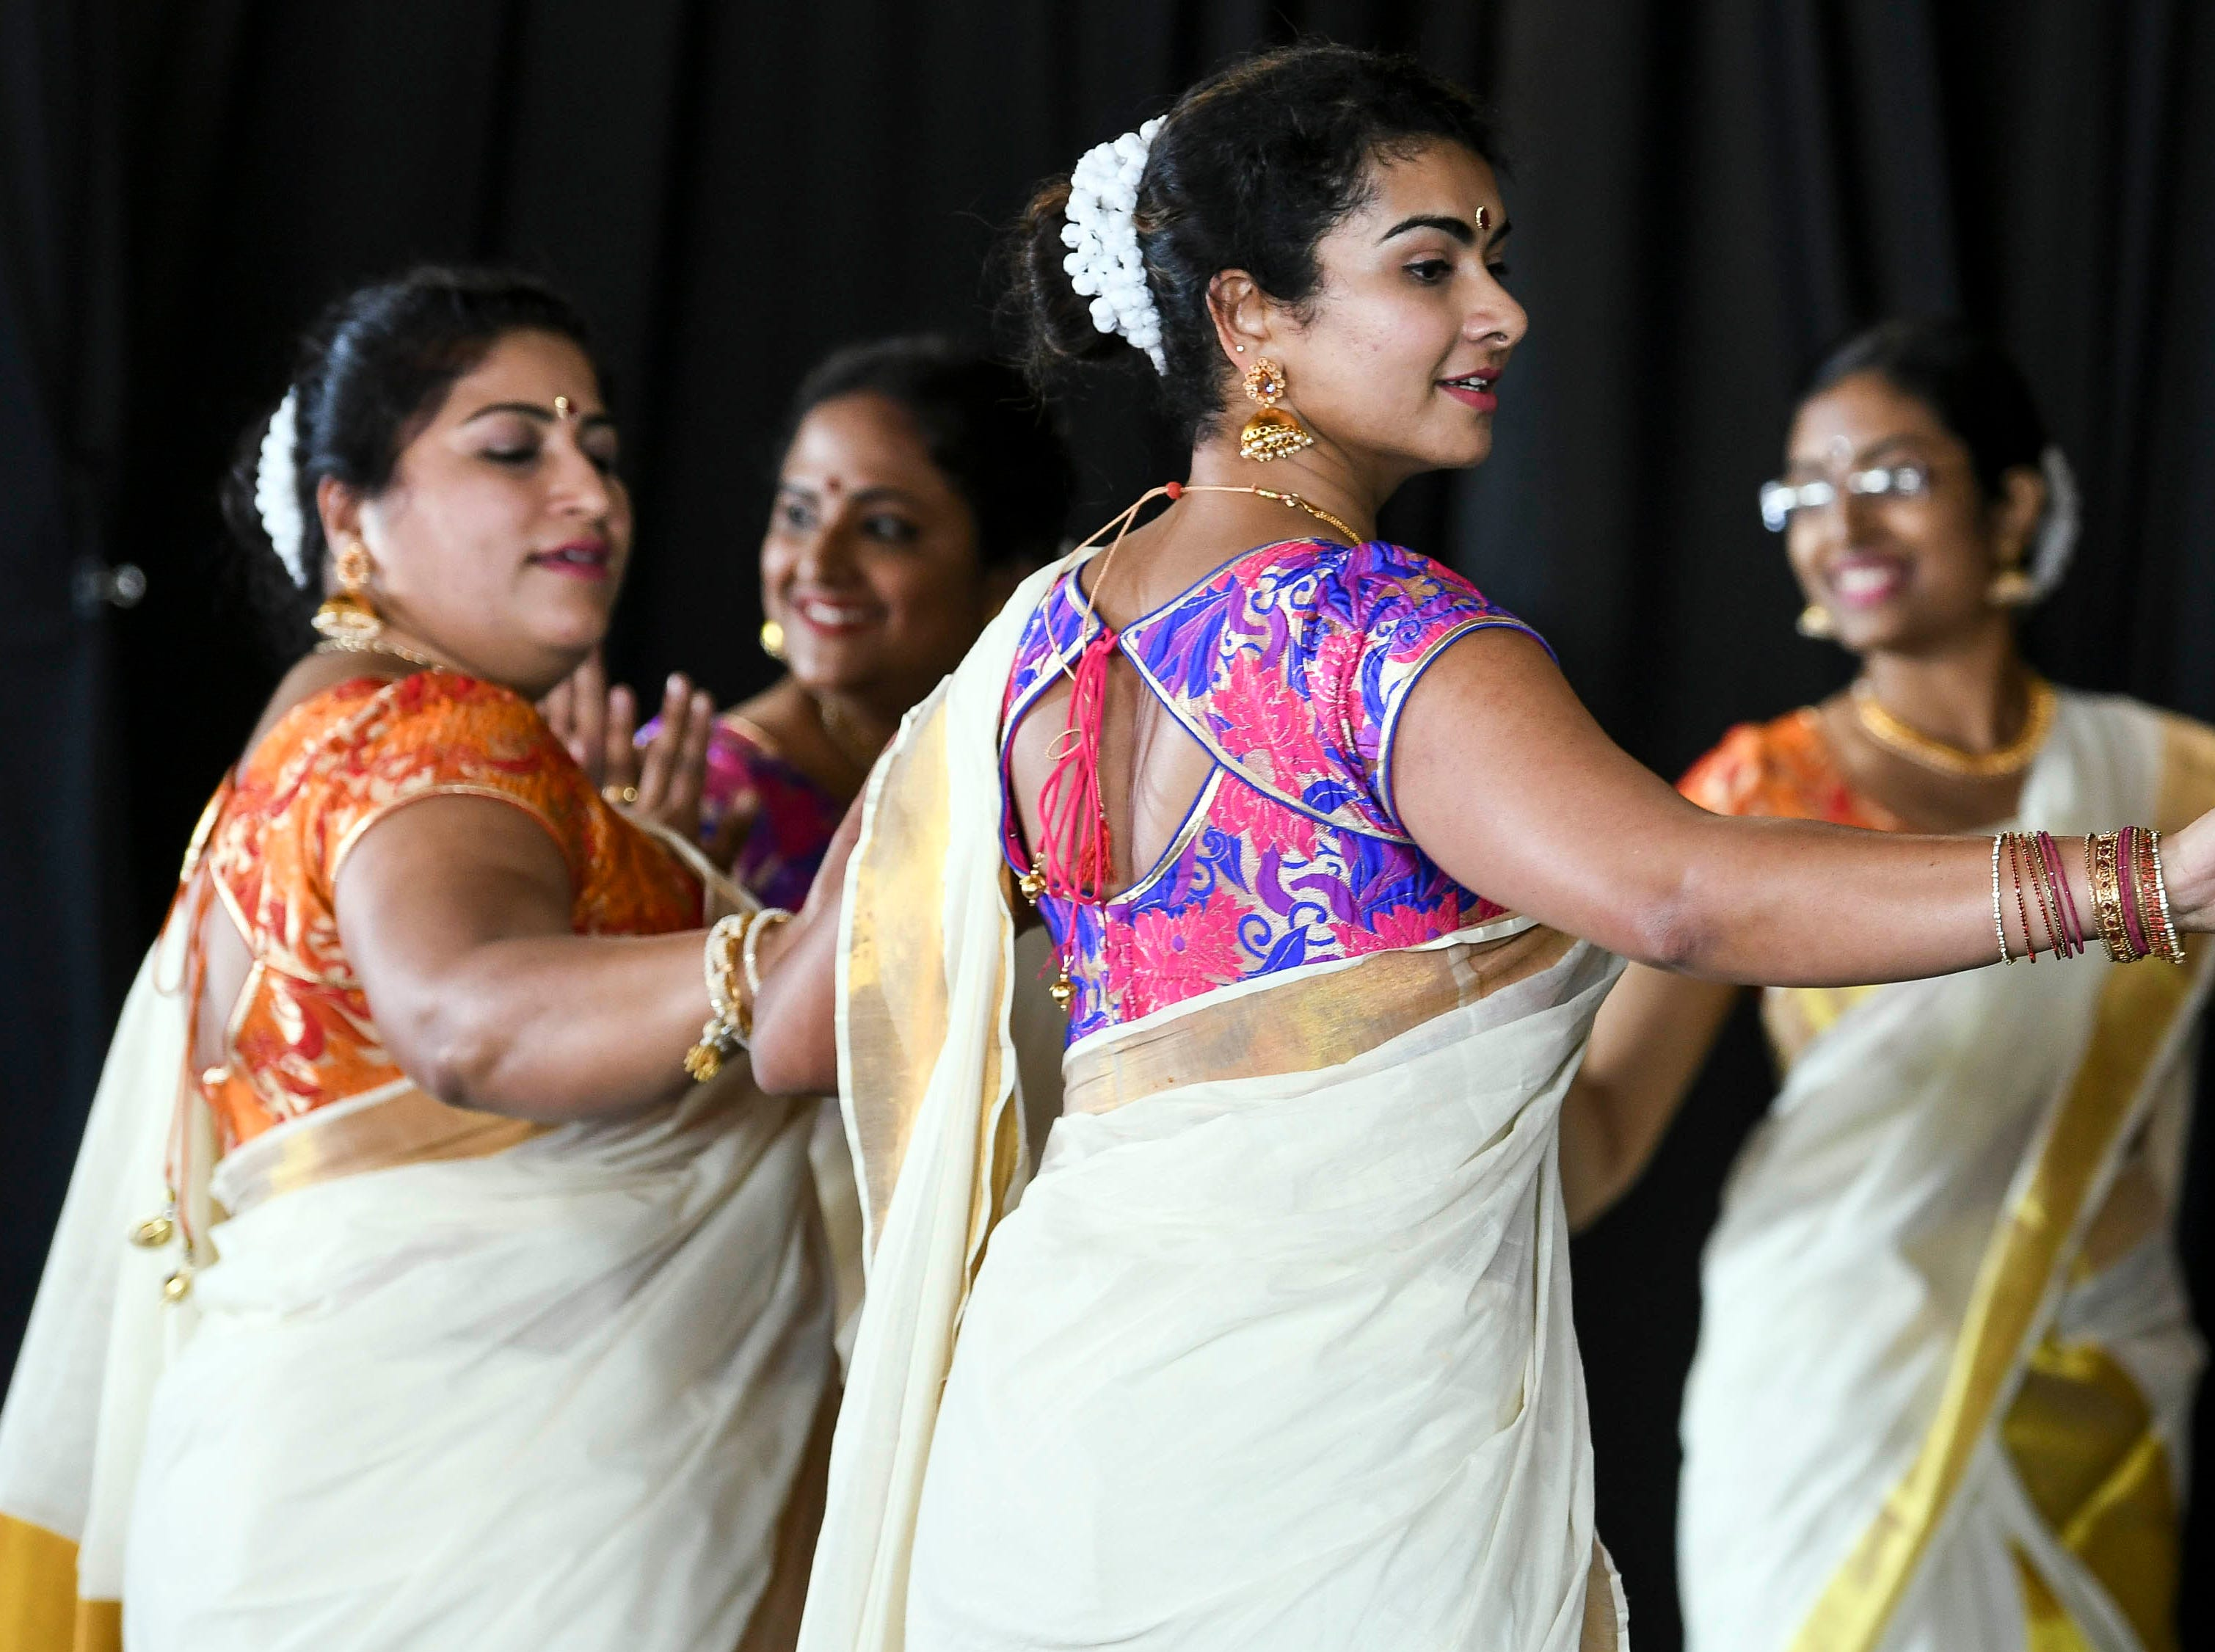 Performers dance on stage during the first day of Indiafest at Wickham Park's main pavilion.